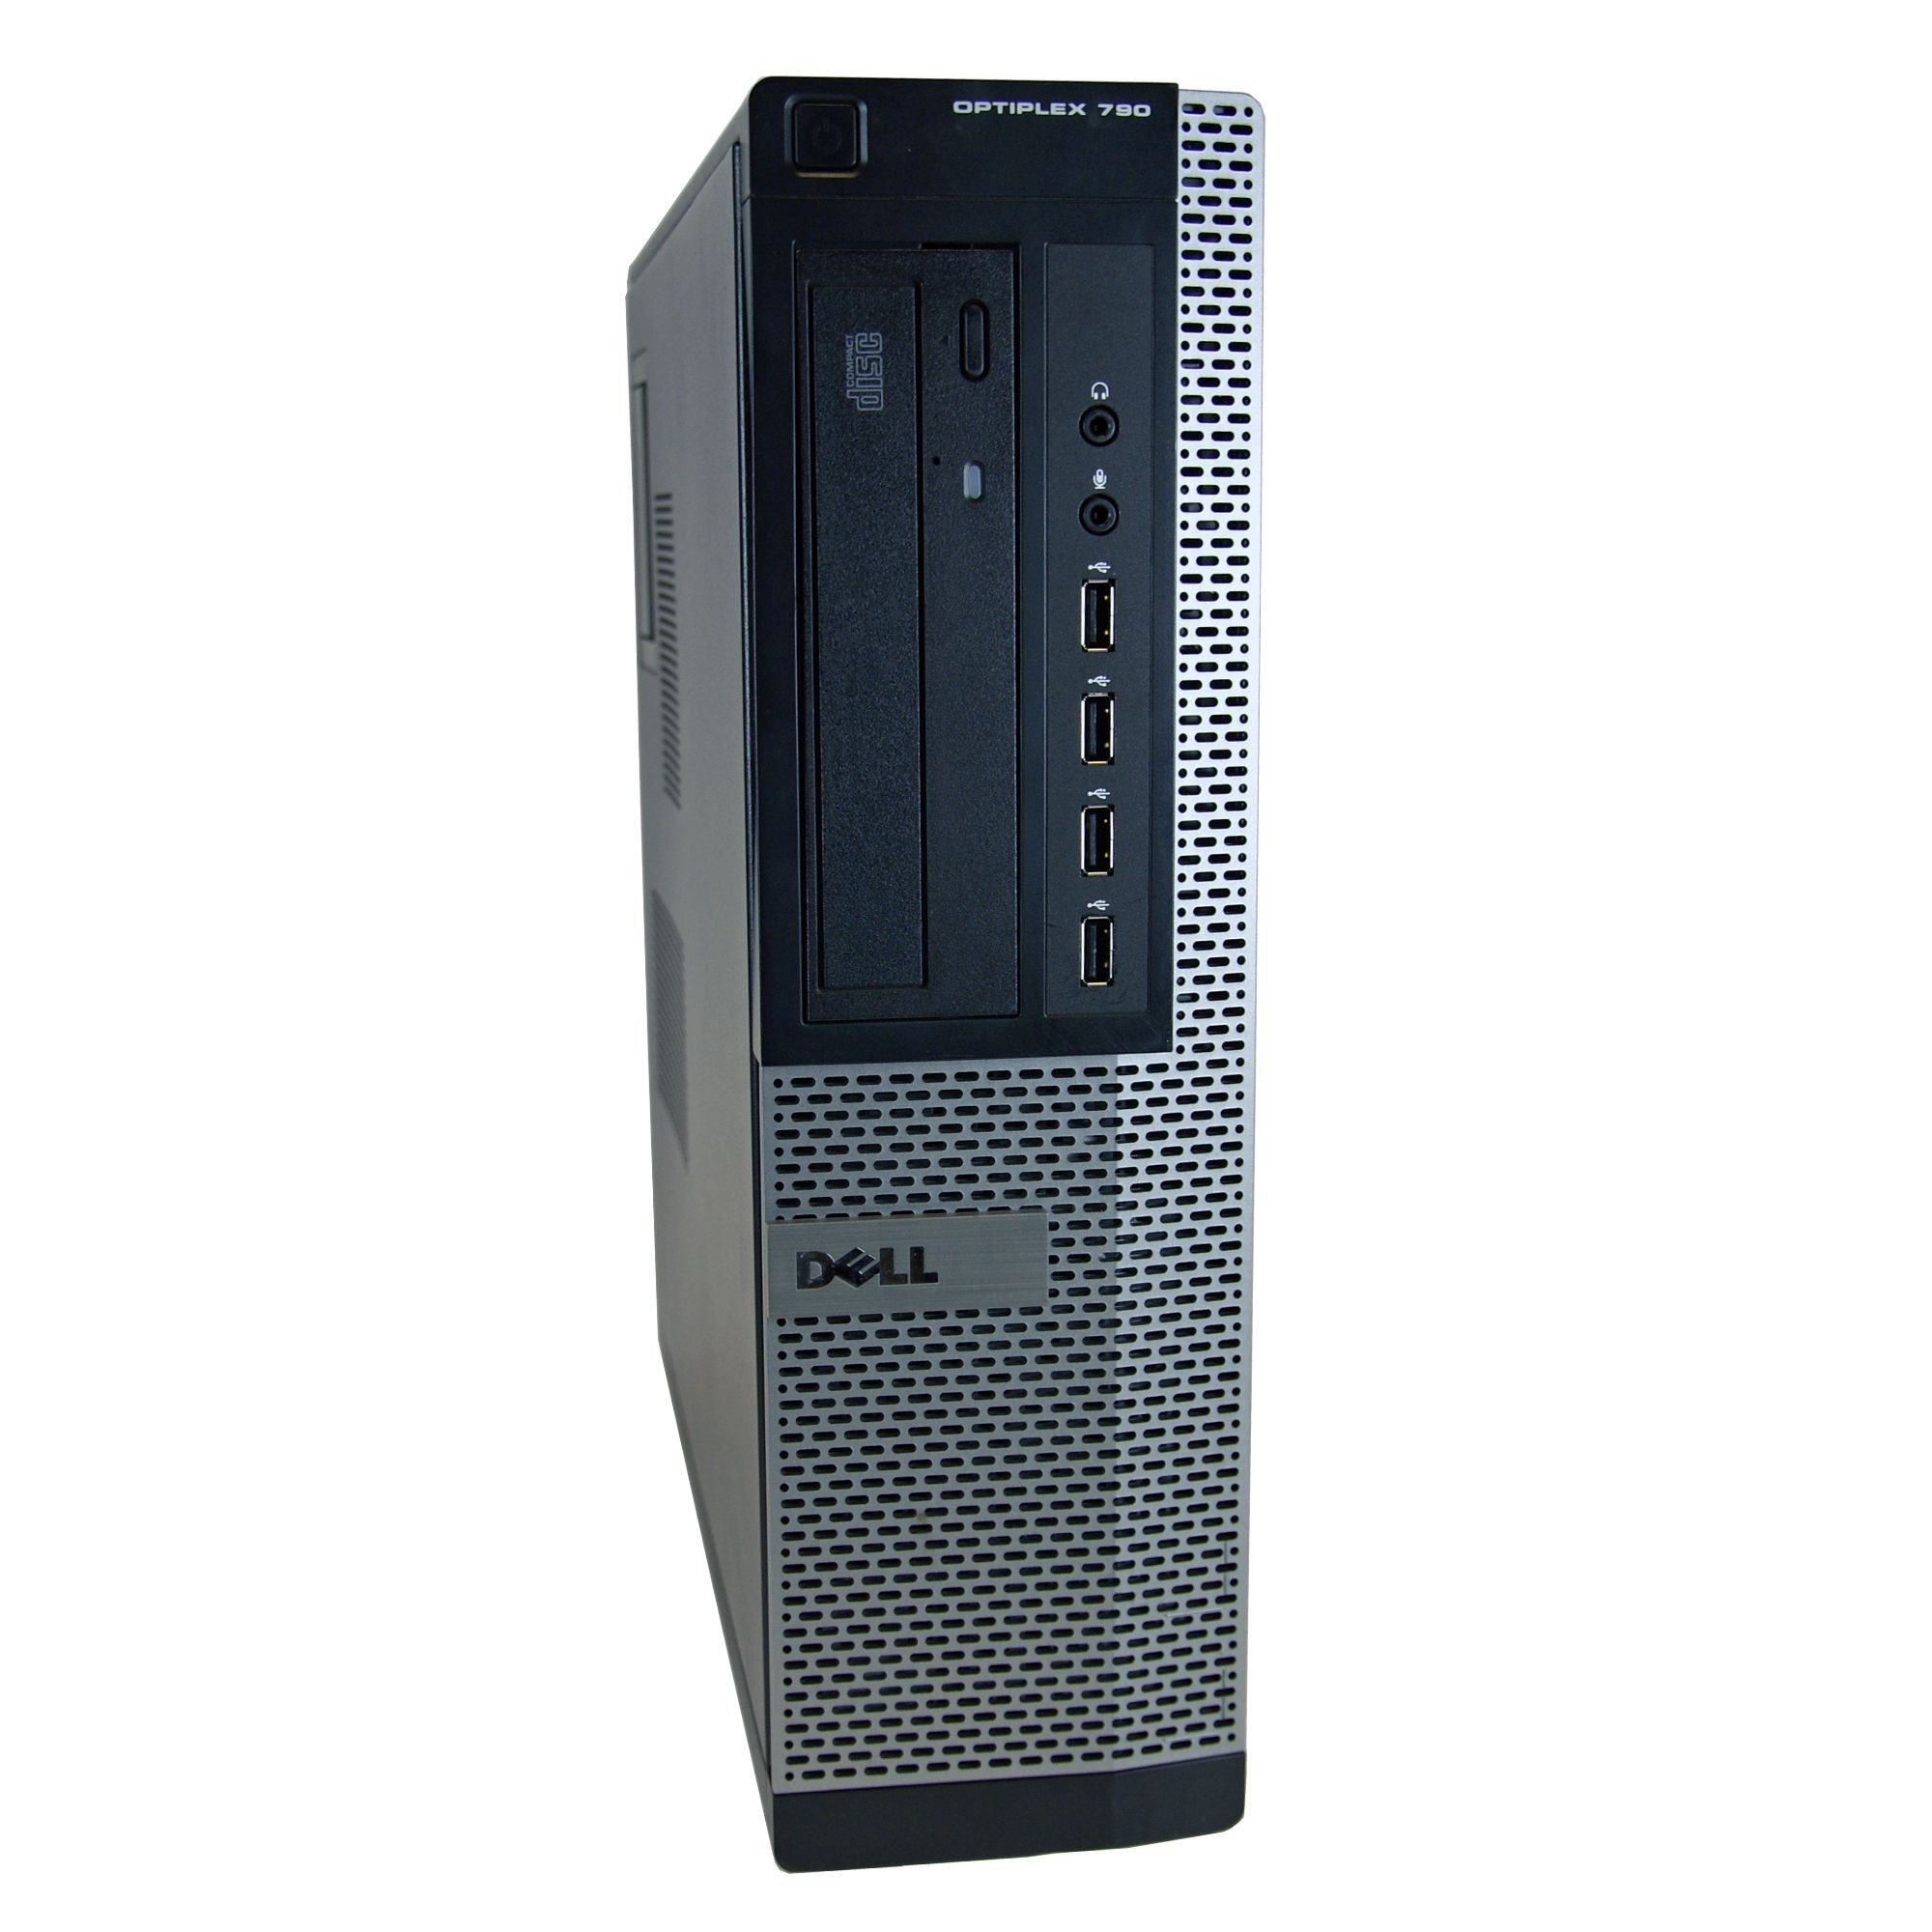 Dell Optiplex 790 DT i3 2100 8GB 5000GB + Windows 10